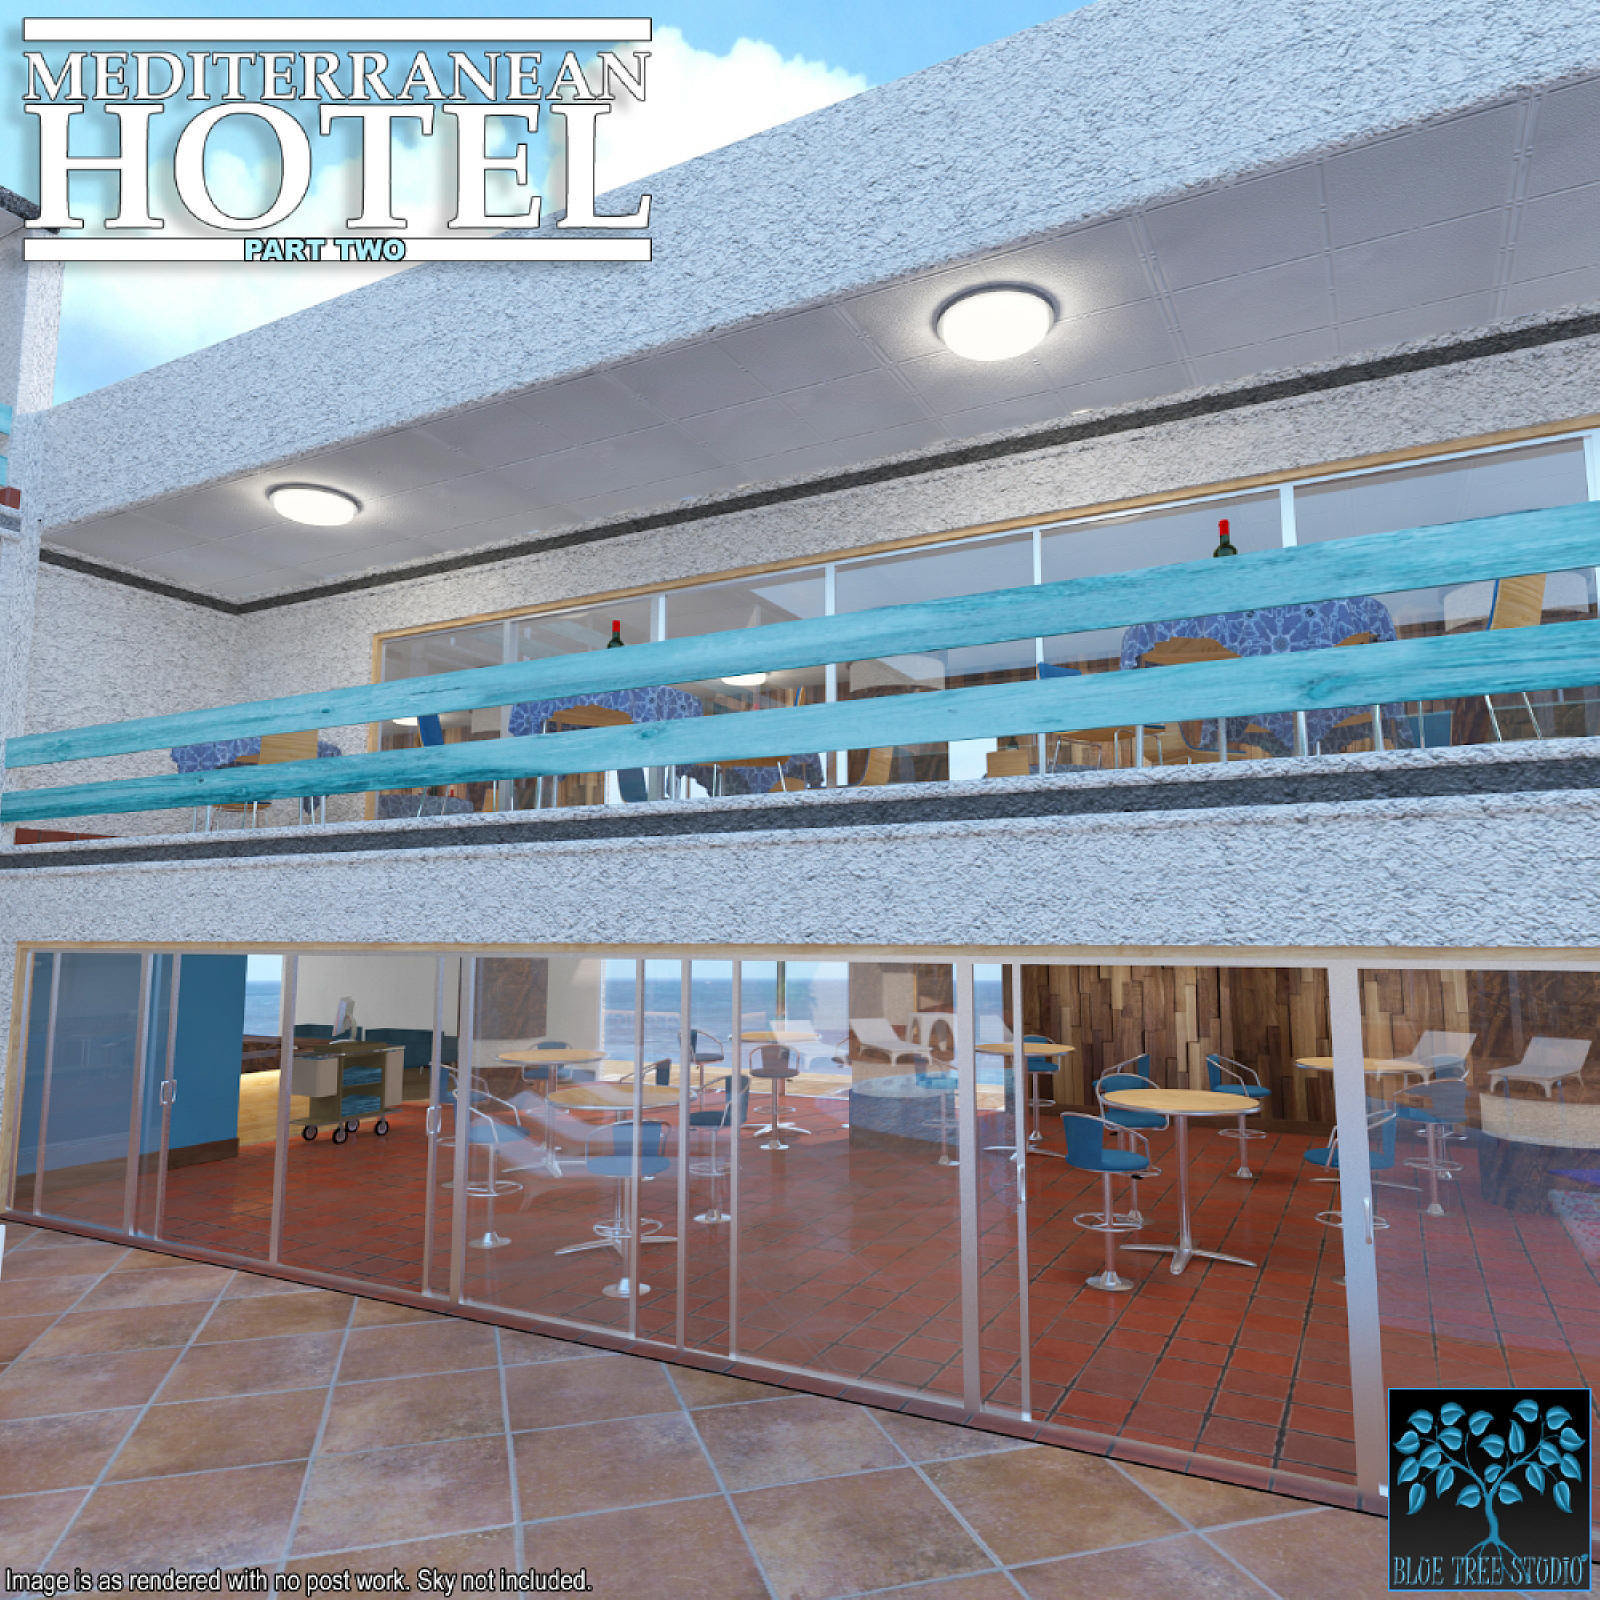 Mediterranean Hotel Part Two for Poser by BlueTreeStudio